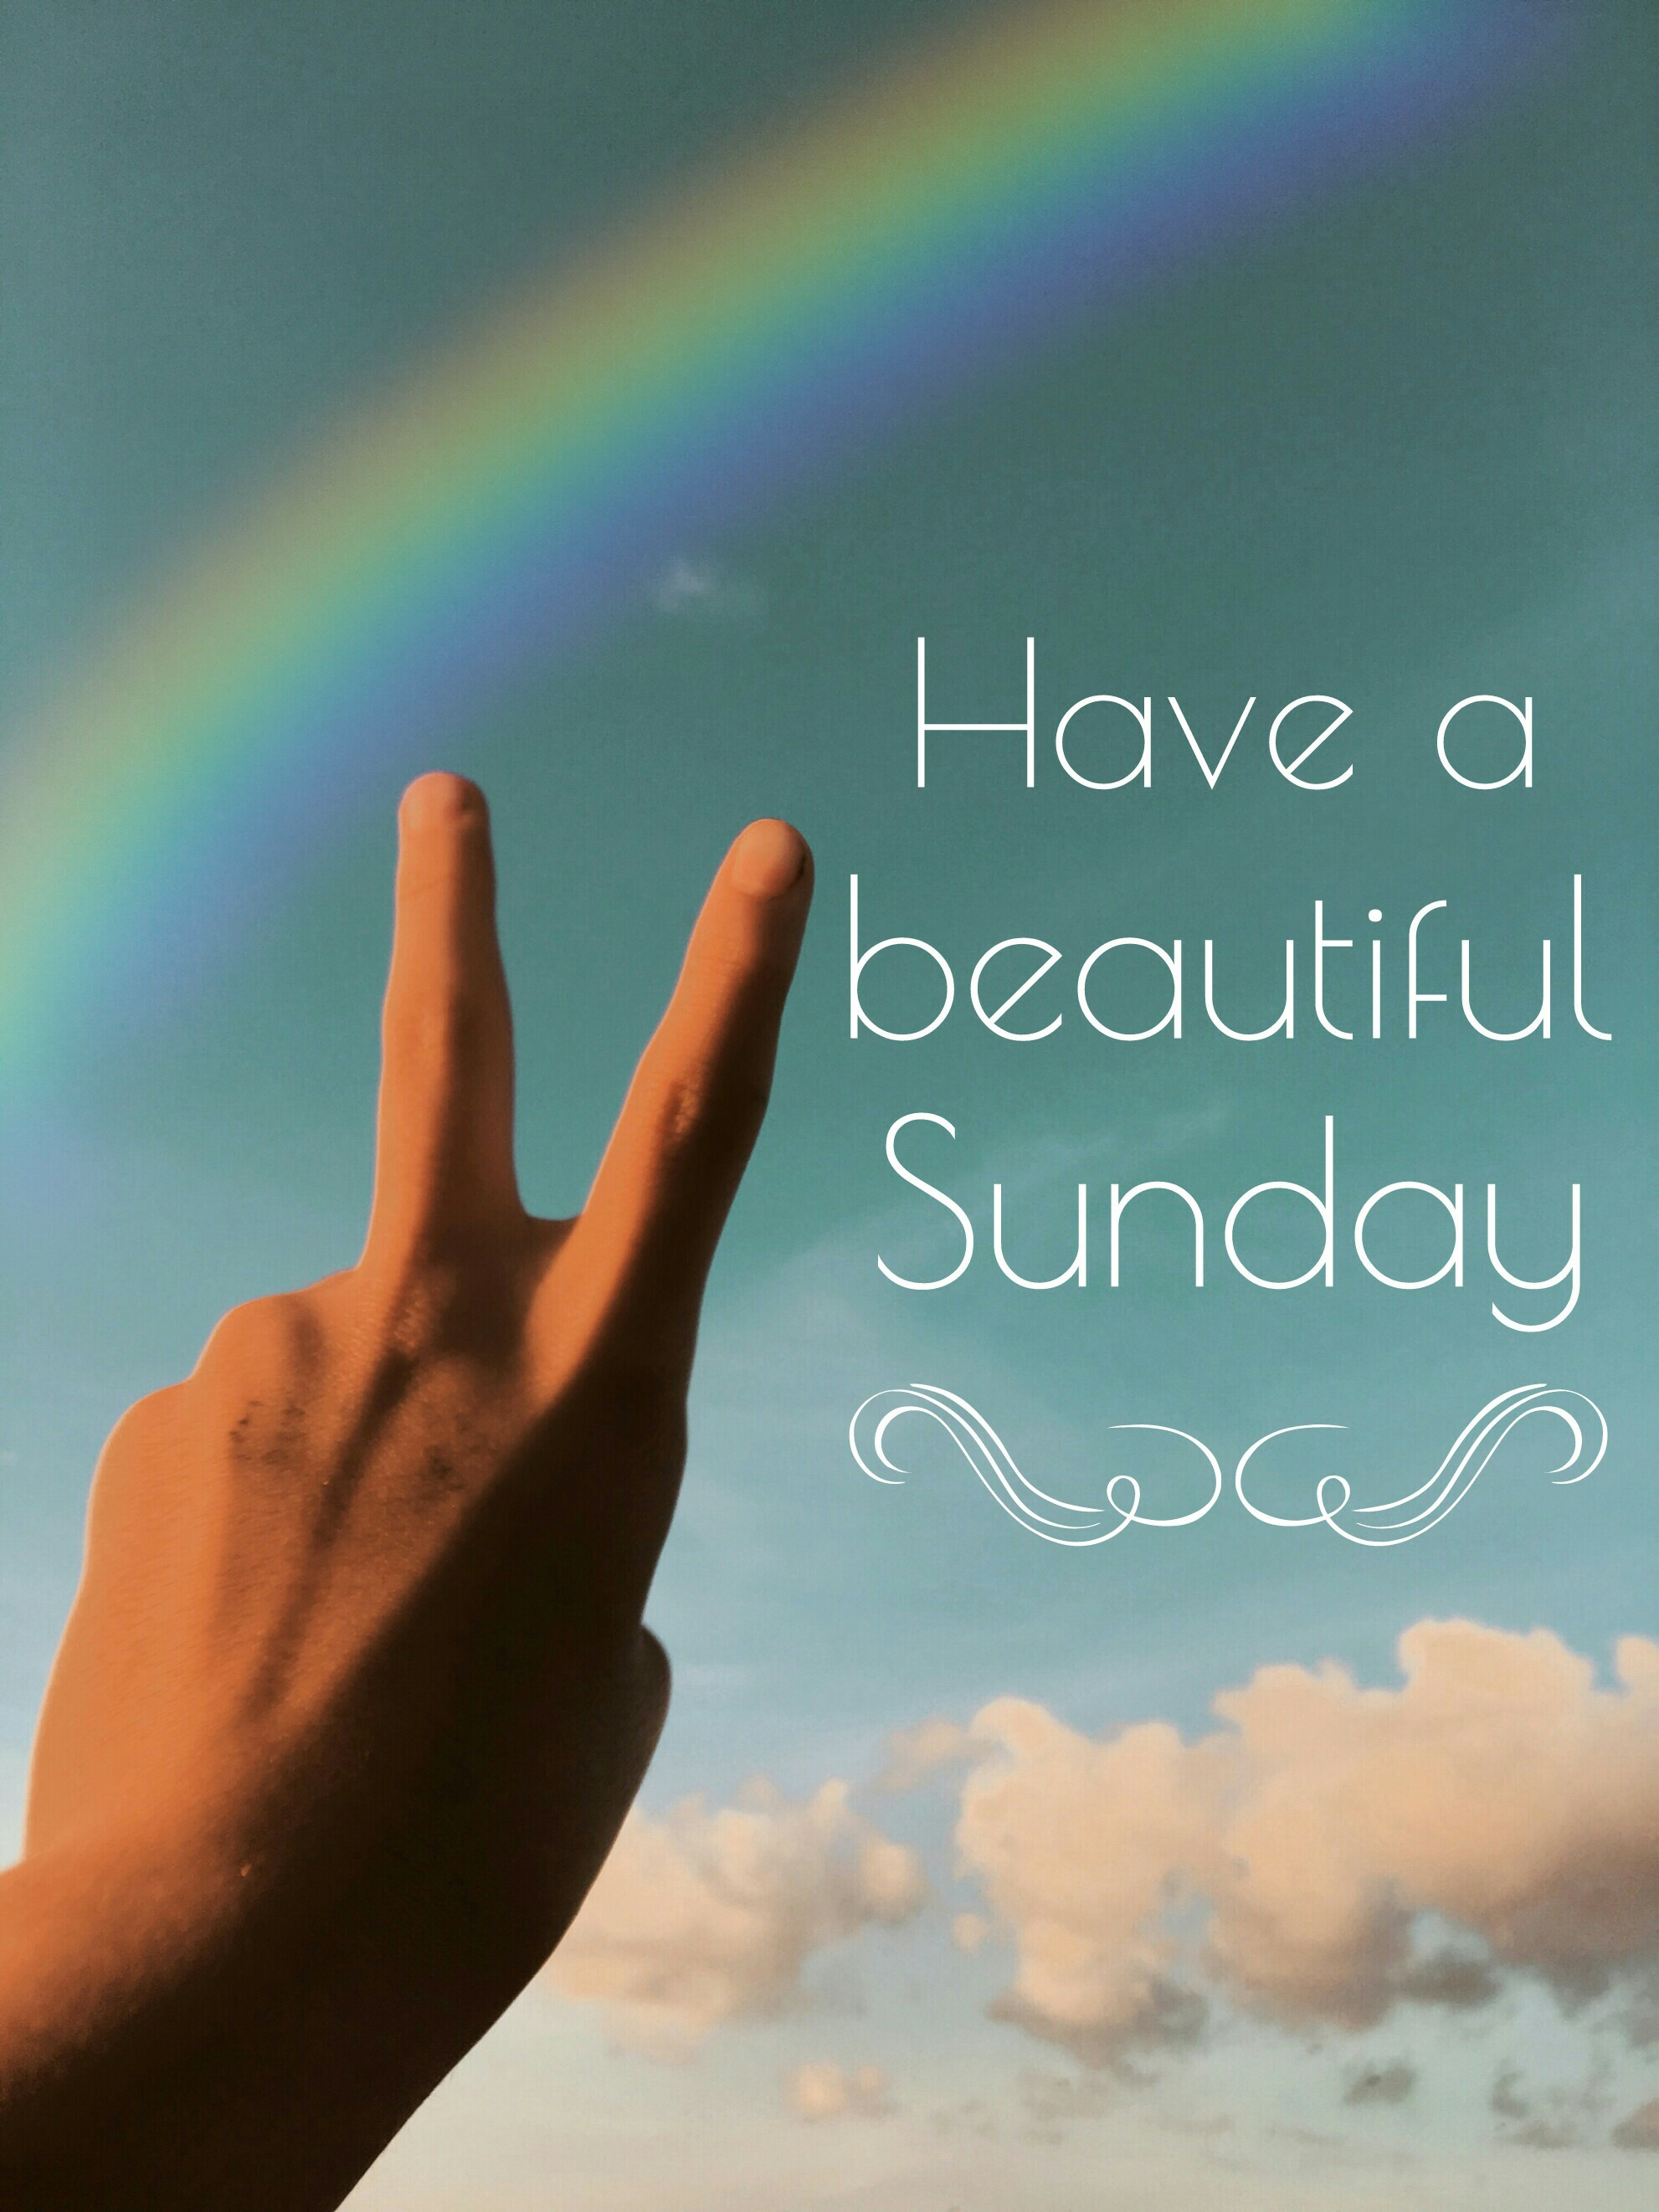 Happy Sunday☺ quotes & sayings sunday funday rainbow c...